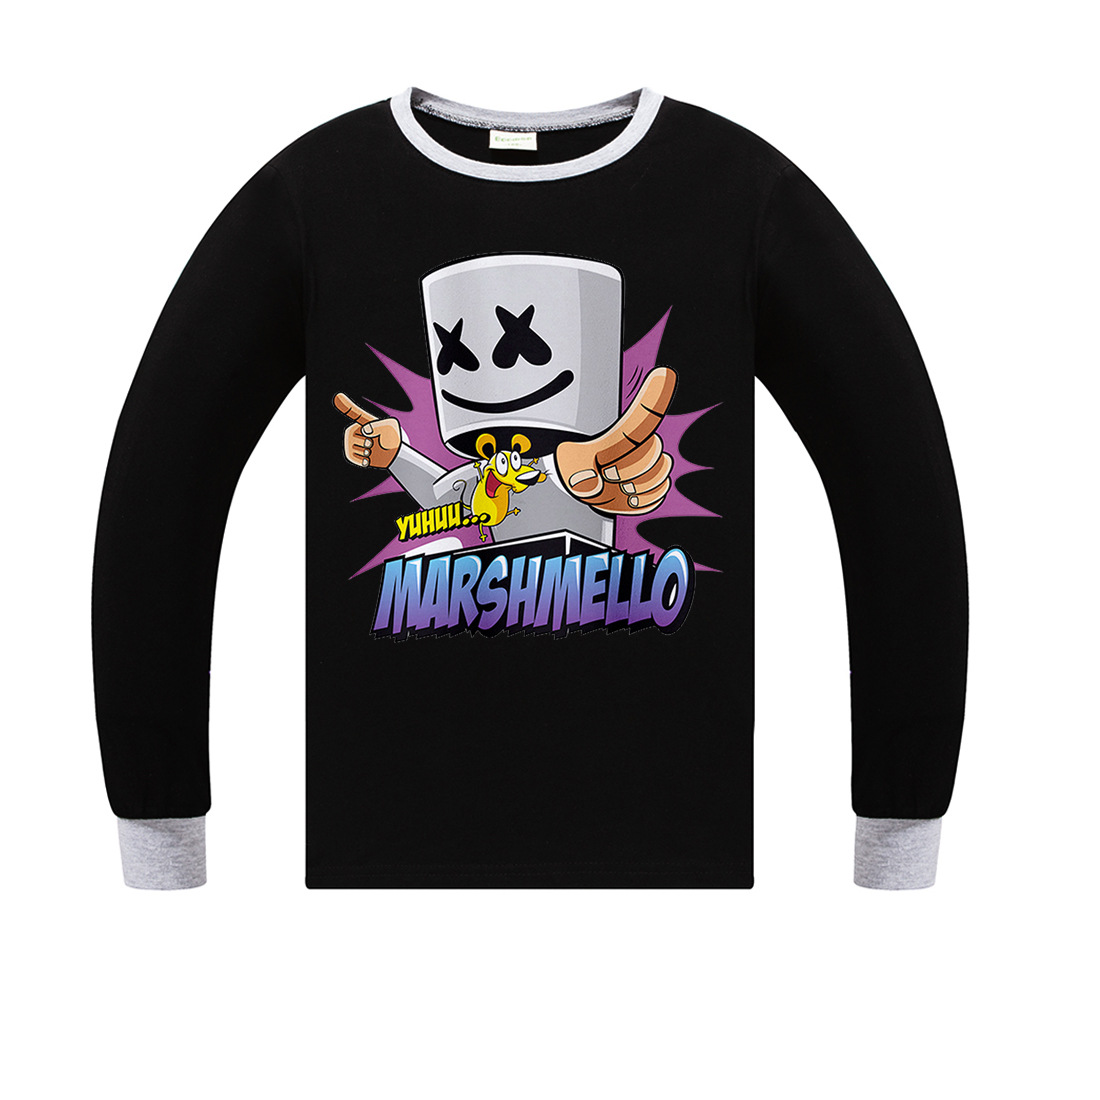 ff6ae5a0cd Children Summer New T-Shirt Marshmello Boy Clothes Fashion DJ Music Printed  Long Sleeve Tops Tees Boys Girls 100% TShirt Clothes